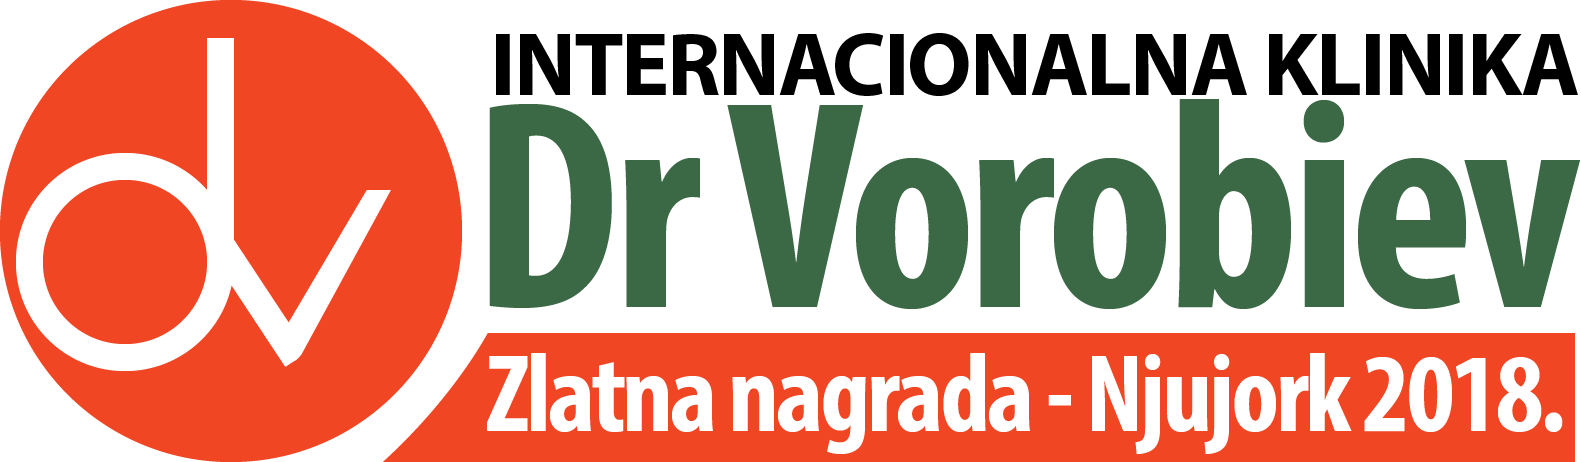 Dr. Vorobiev logo Addiction Treatment